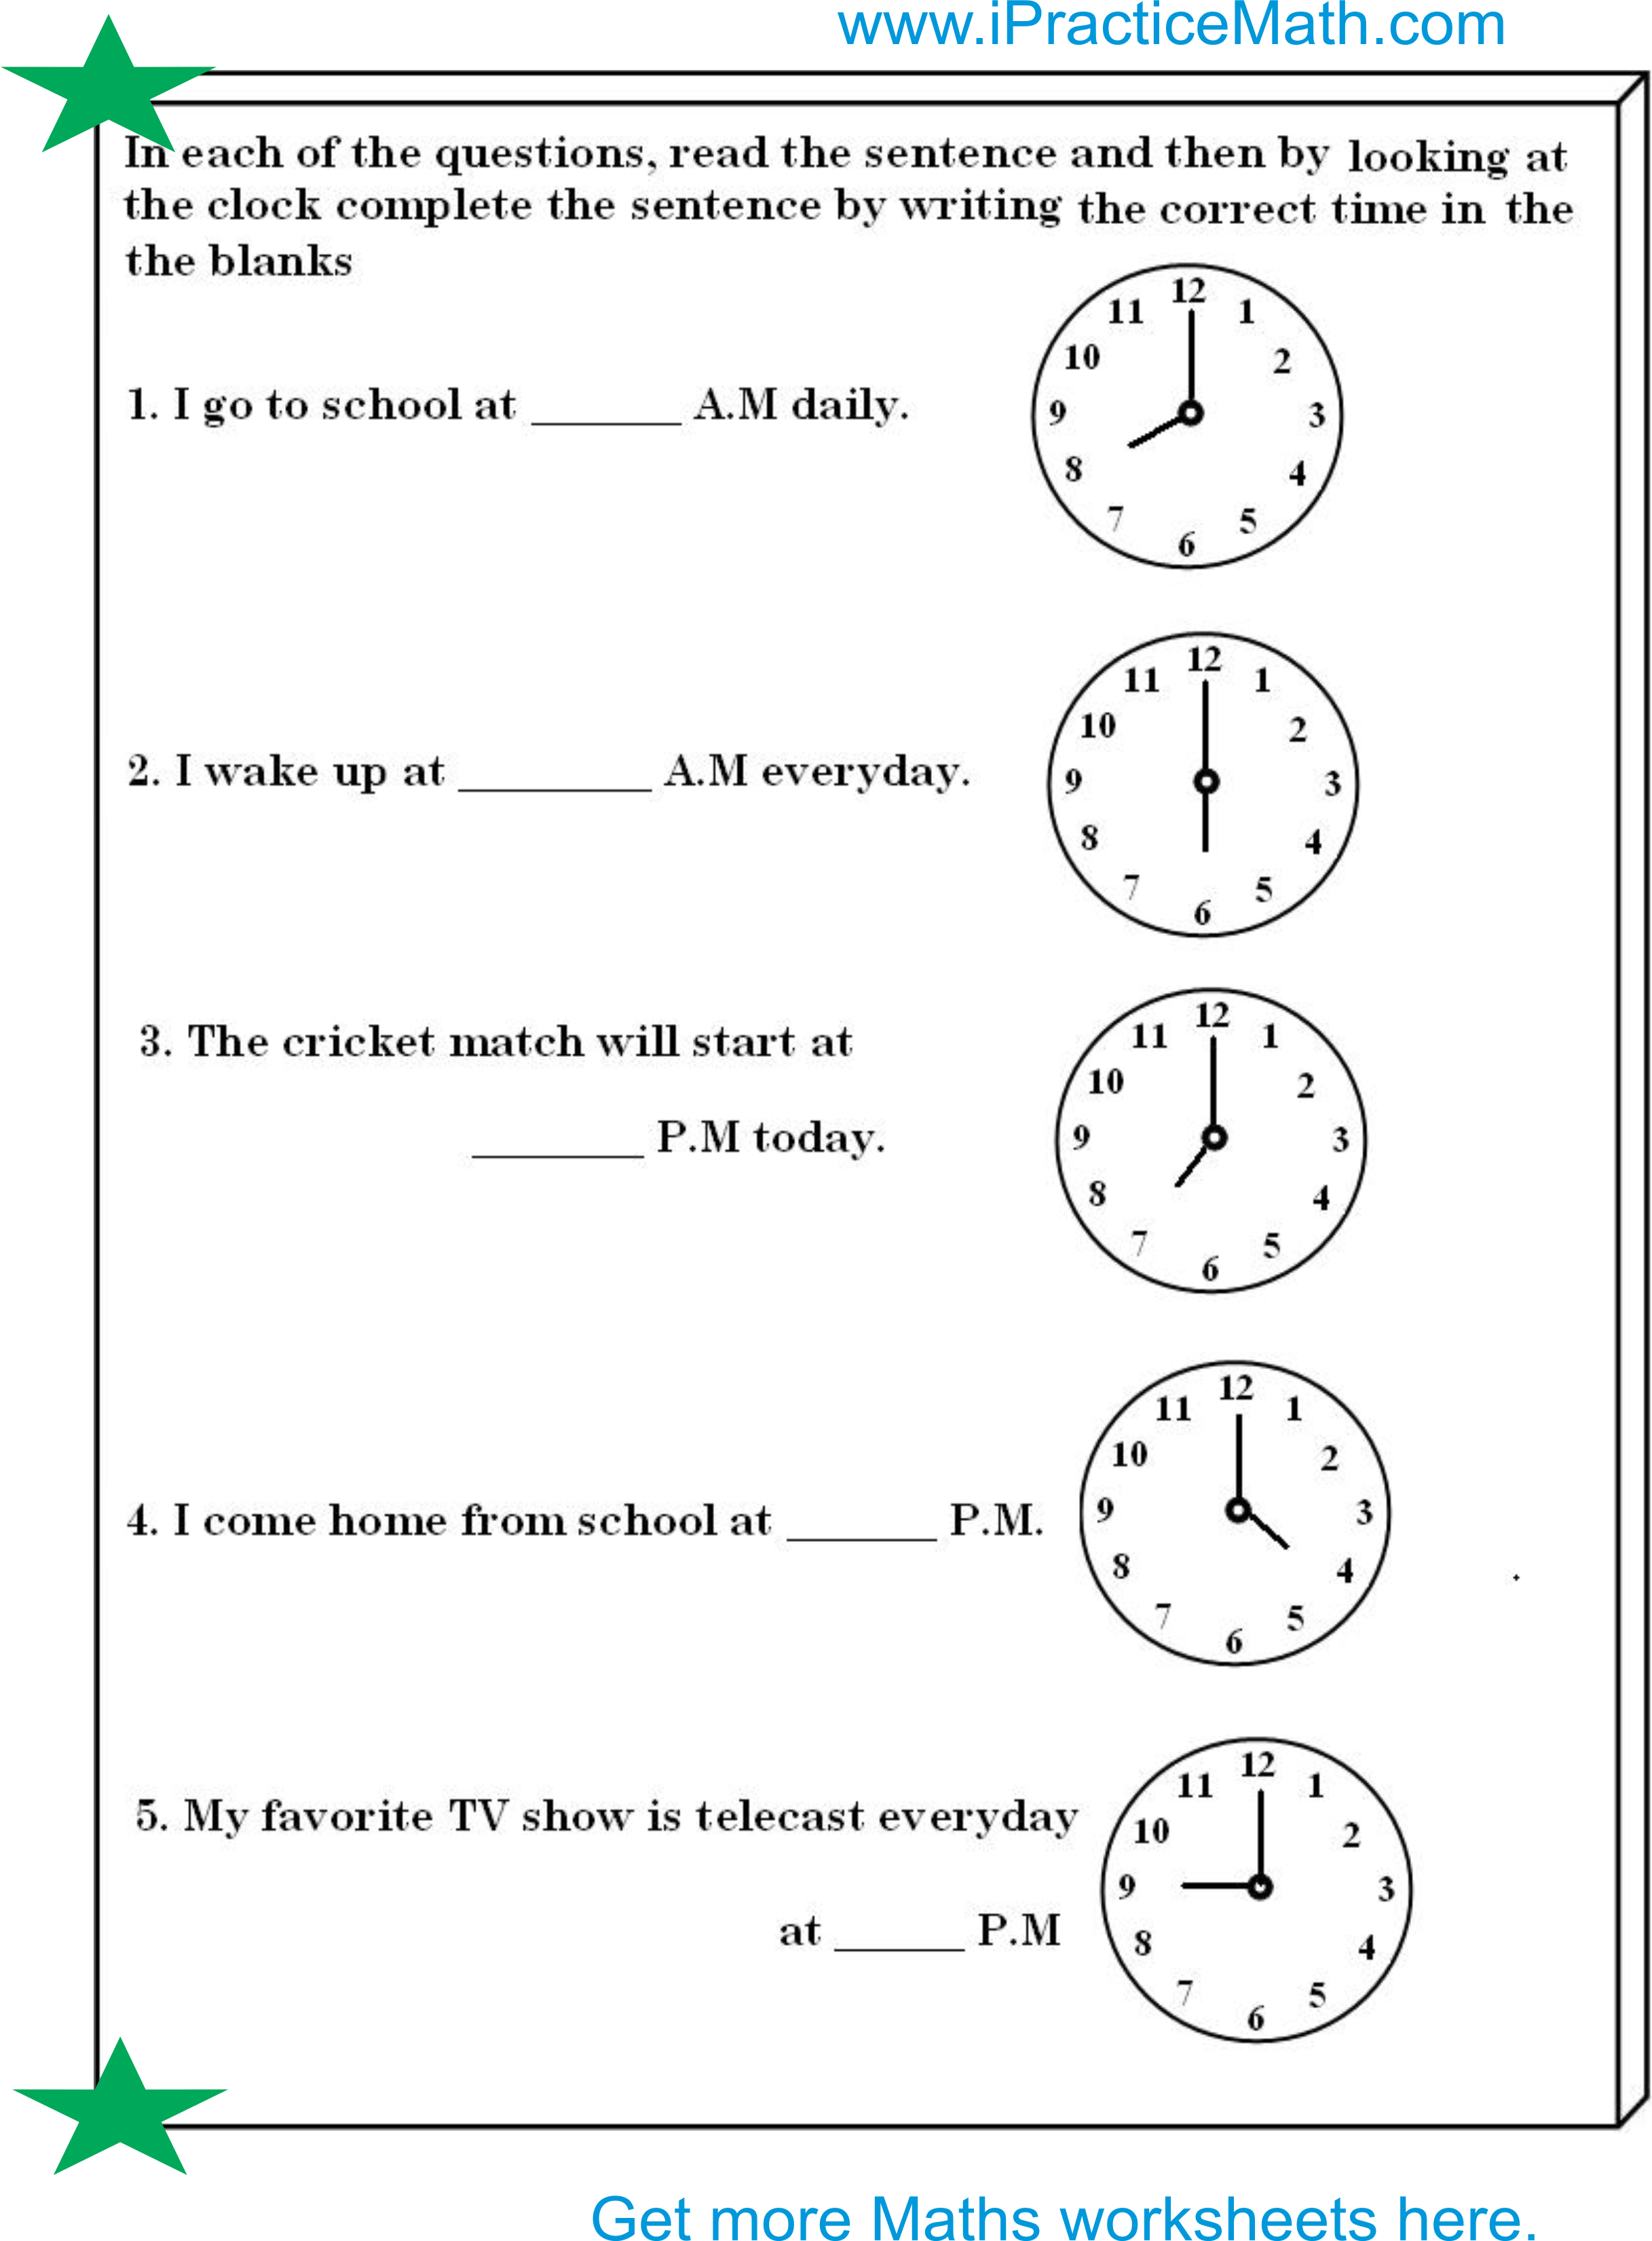 download clock worksheet grade 2 worksheets images frompo. Black Bedroom Furniture Sets. Home Design Ideas